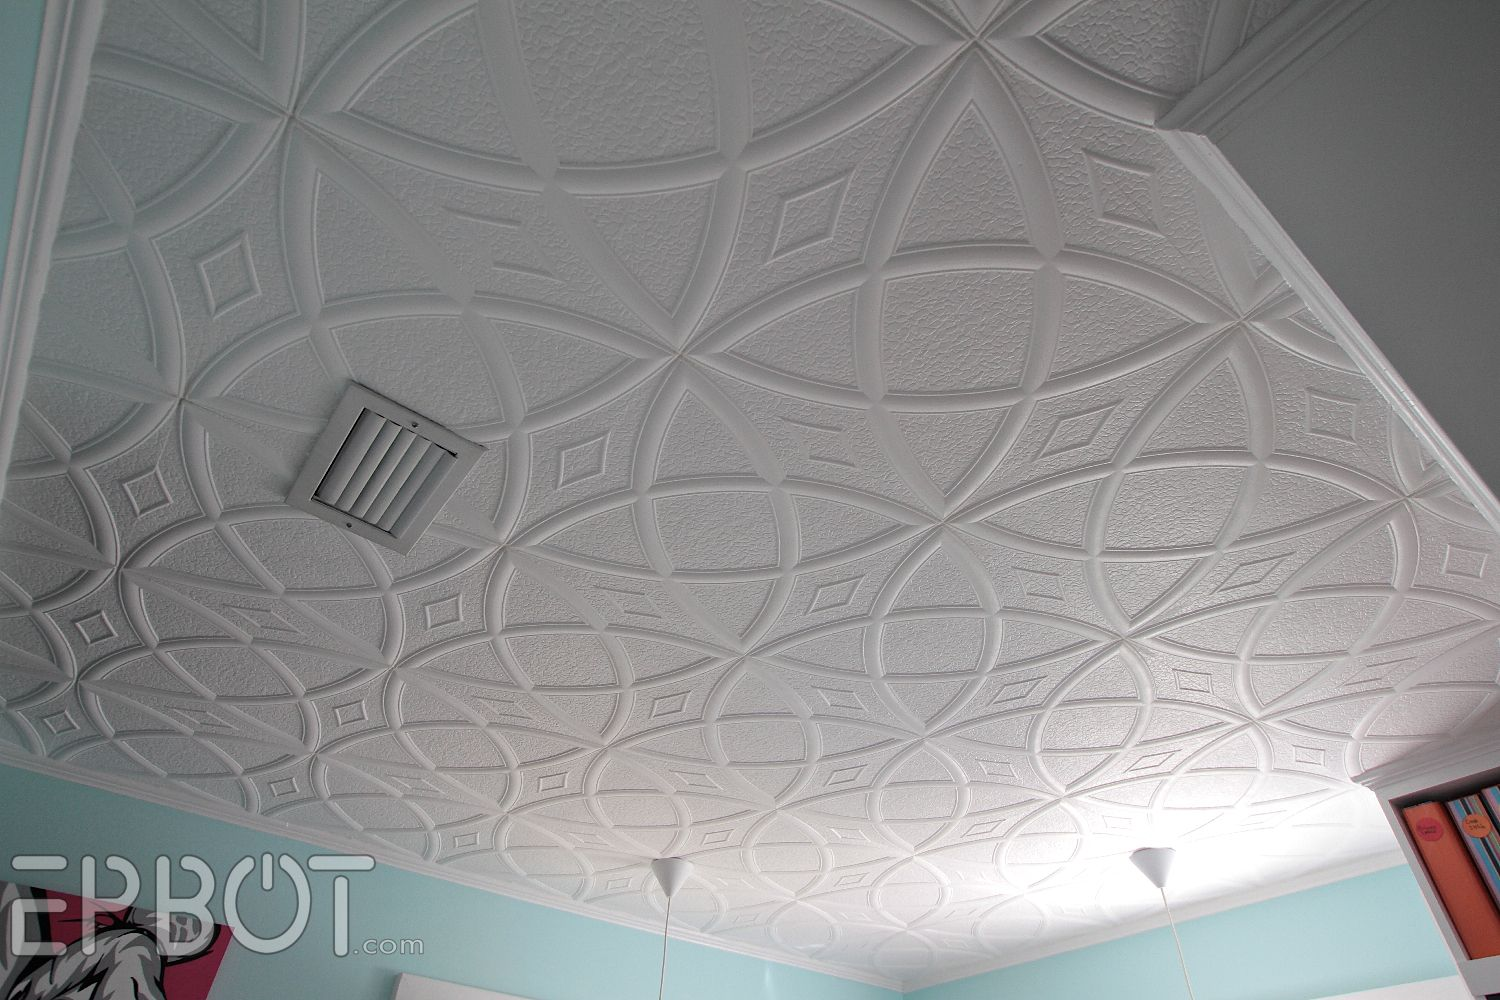 A solution to my hideous ceilings epbot diy faux tin tile epbot diy faux tin tile ceiling styrofoam tiles that can be mounted over popcorn ceilings and painted doublecrazyfo Images